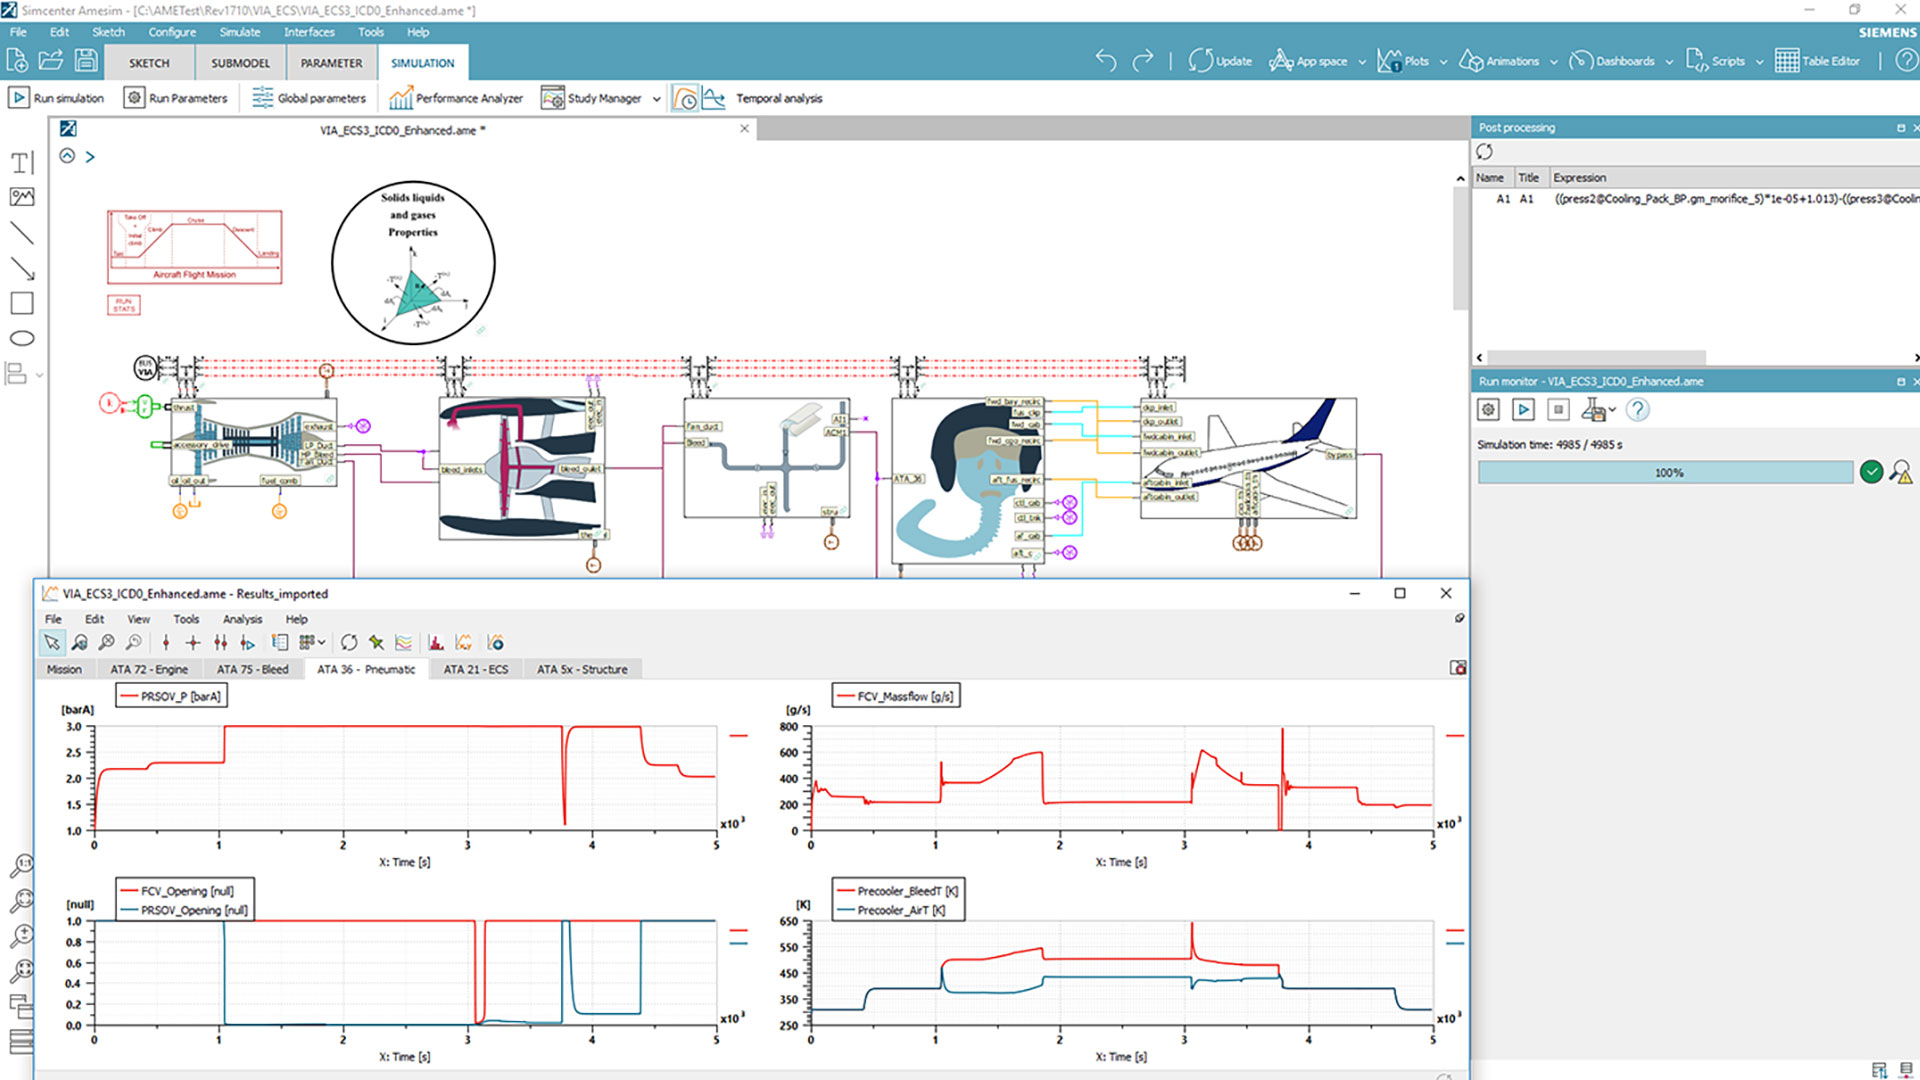 Simcenter Amesim for the environmental control systems optimization